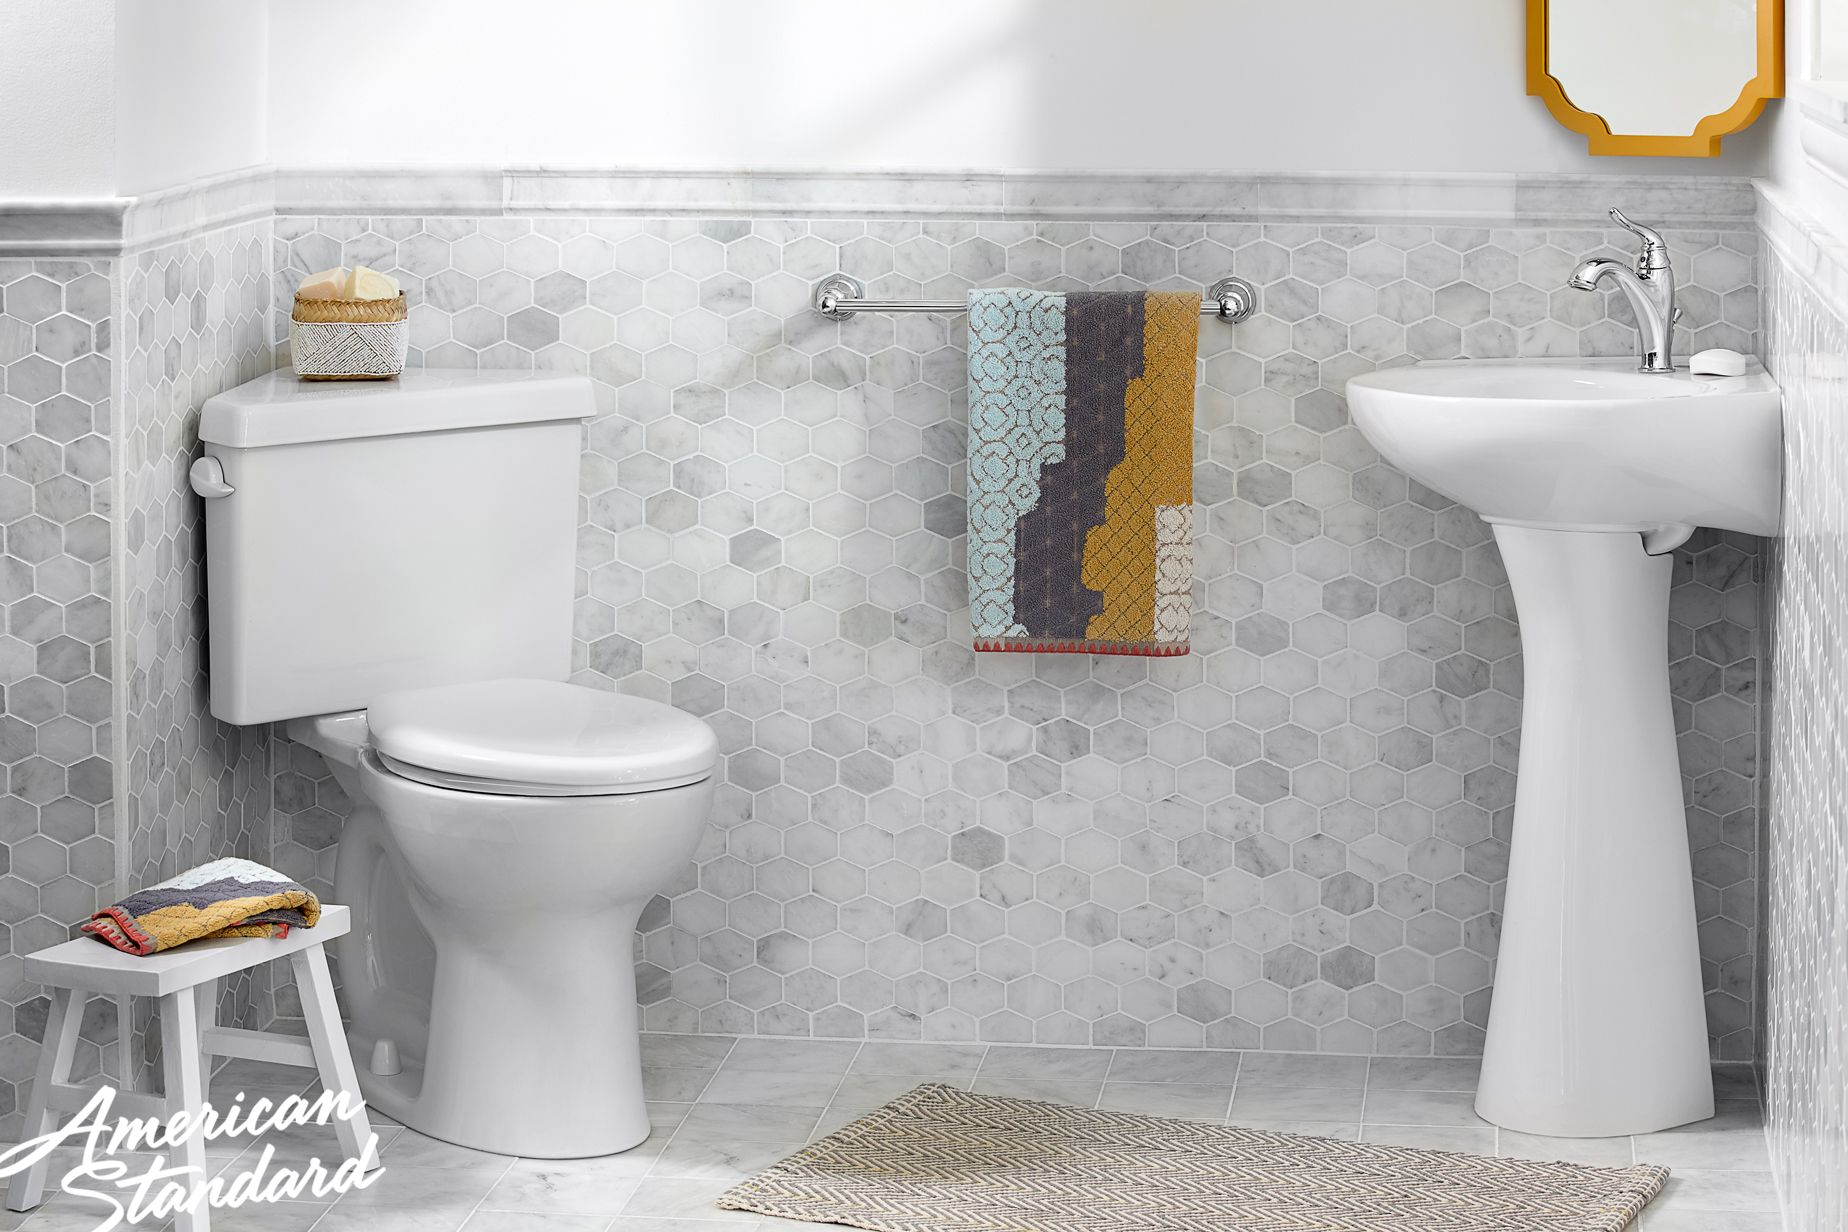 The Compact Triangle Cadet Pro And Cornice Pedestal Sink